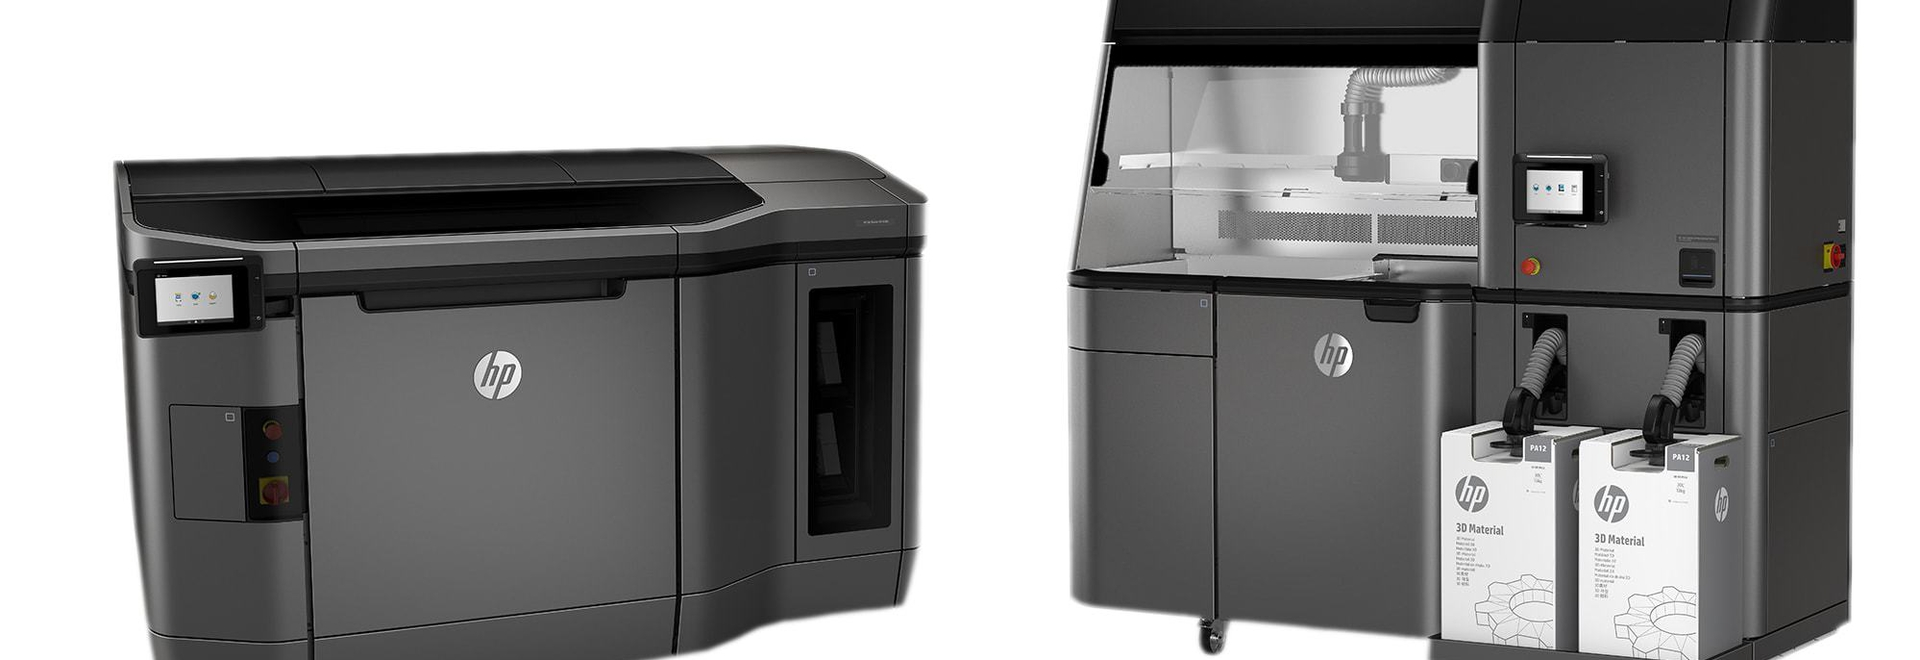 The HP Jet Fusion 3D 4210/4200 Printing Solution. Photo via HP.